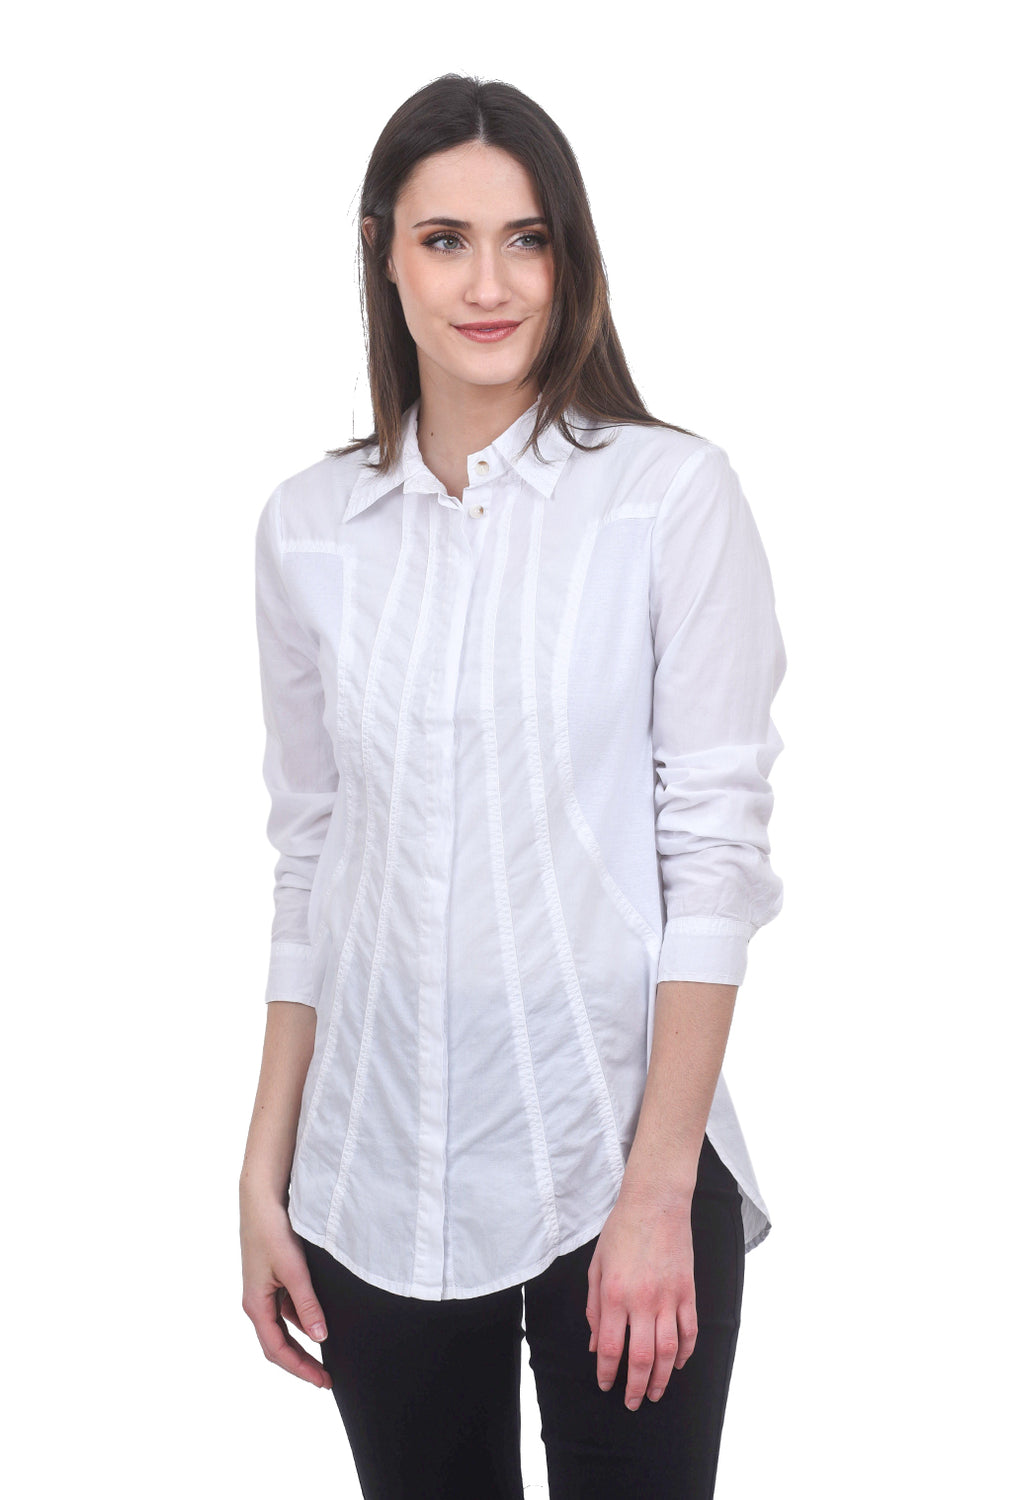 XCVI Ioan Button-Up White